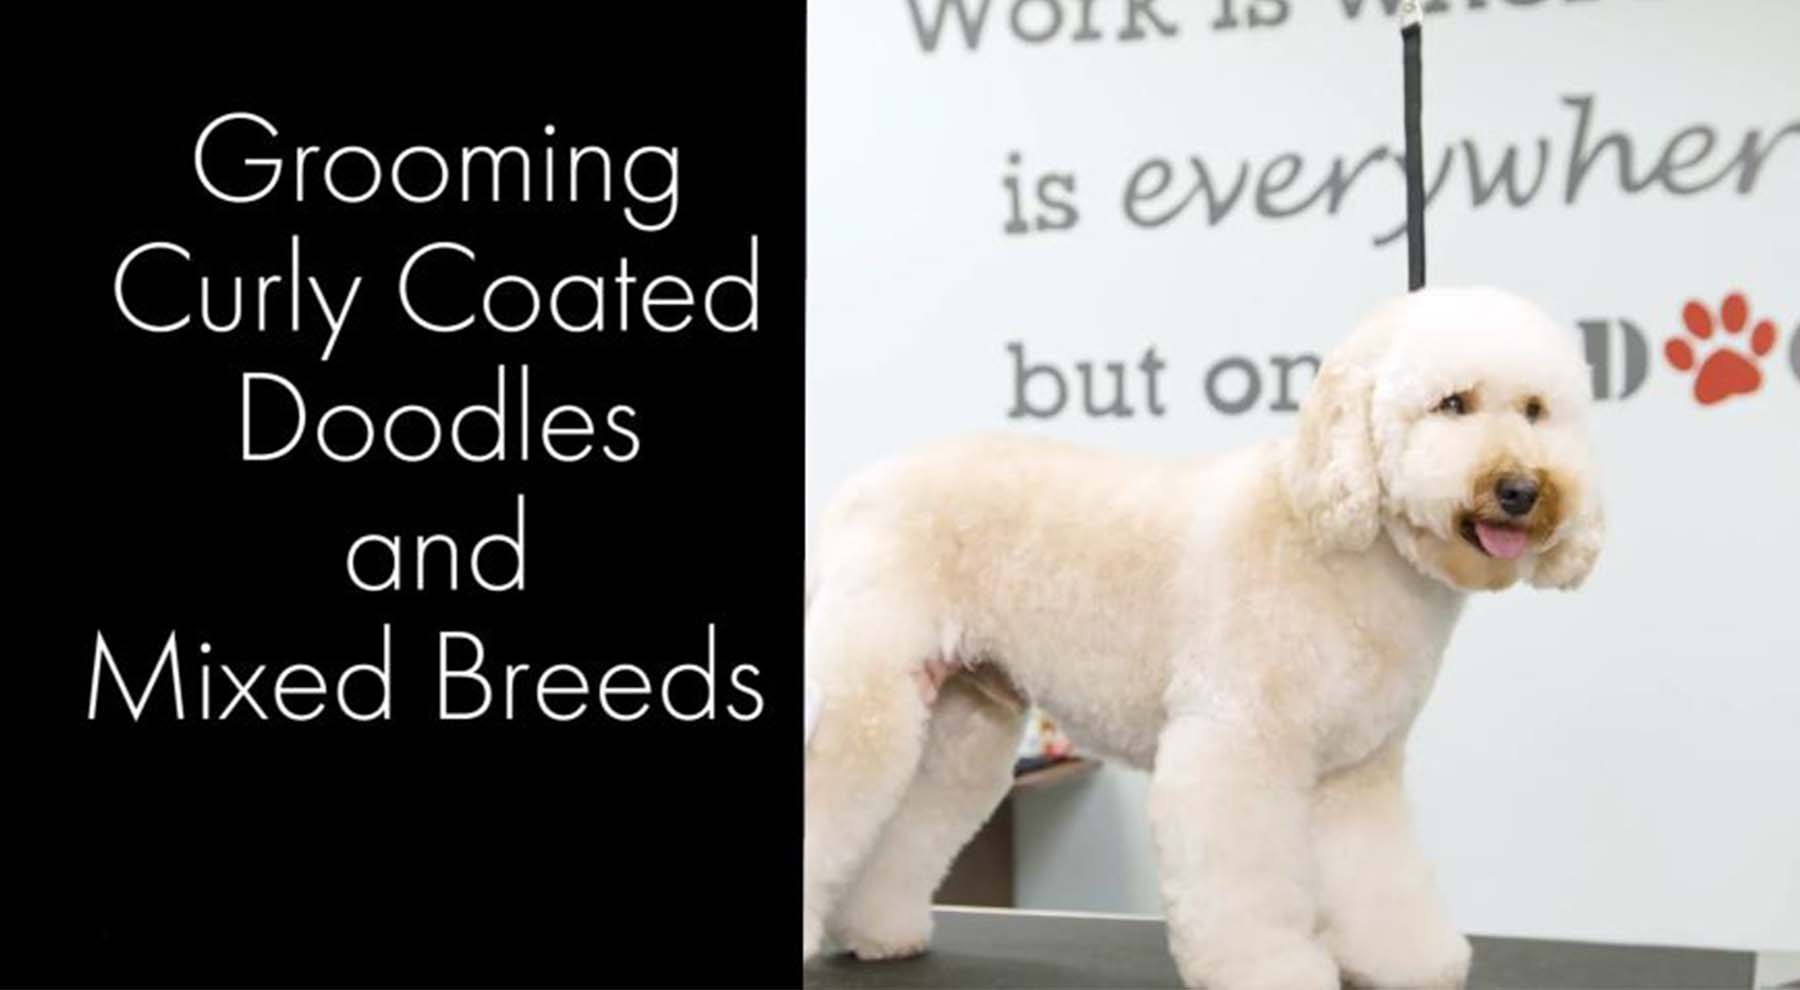 Curly Coated Doodles and Mixed Breeds Grooming